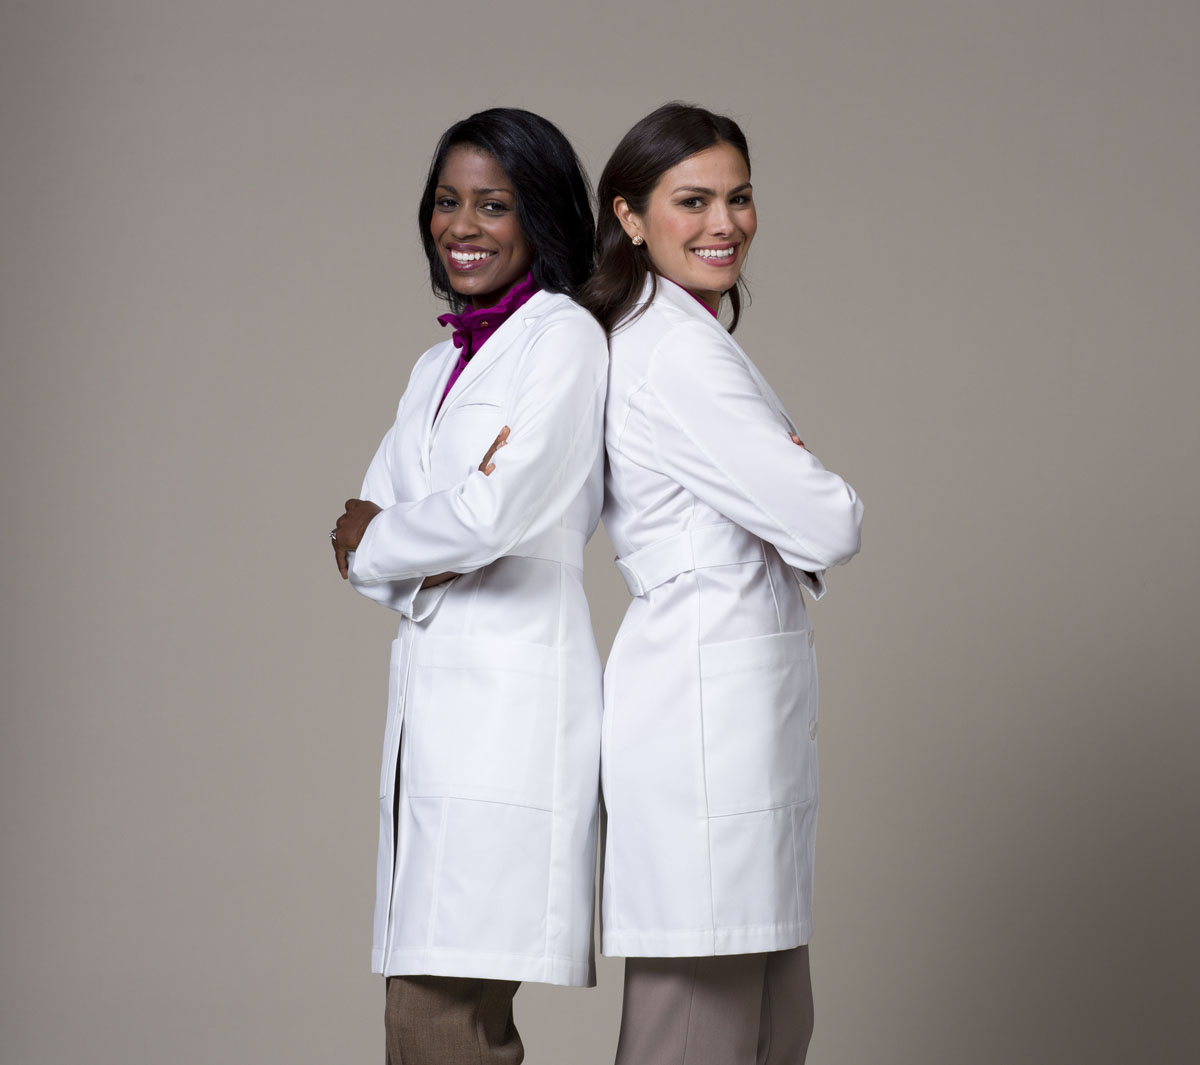 surgeon medical lab coats - HD 1200×1065